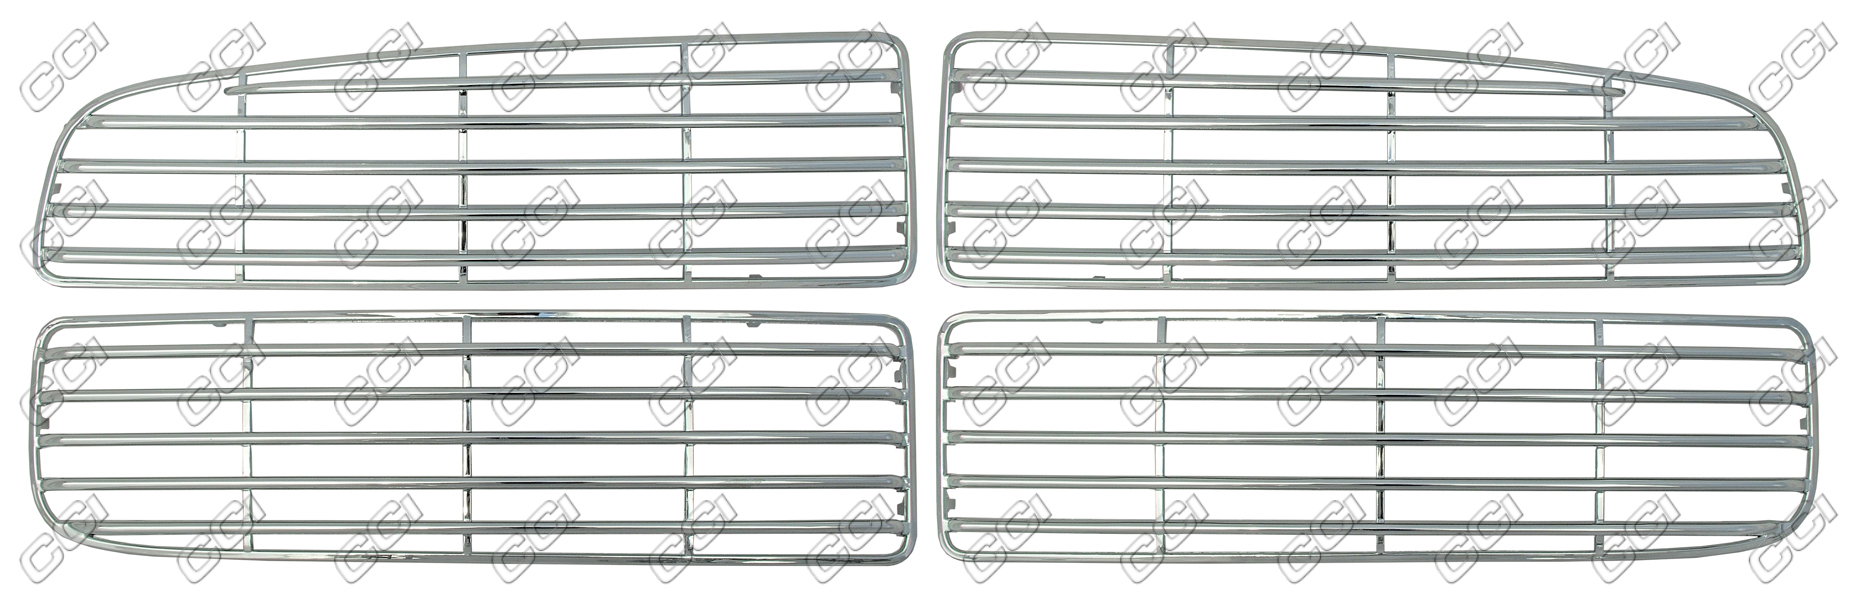 Dodge Ram  2002-2004 (4 Piece) Chrome Front Grille